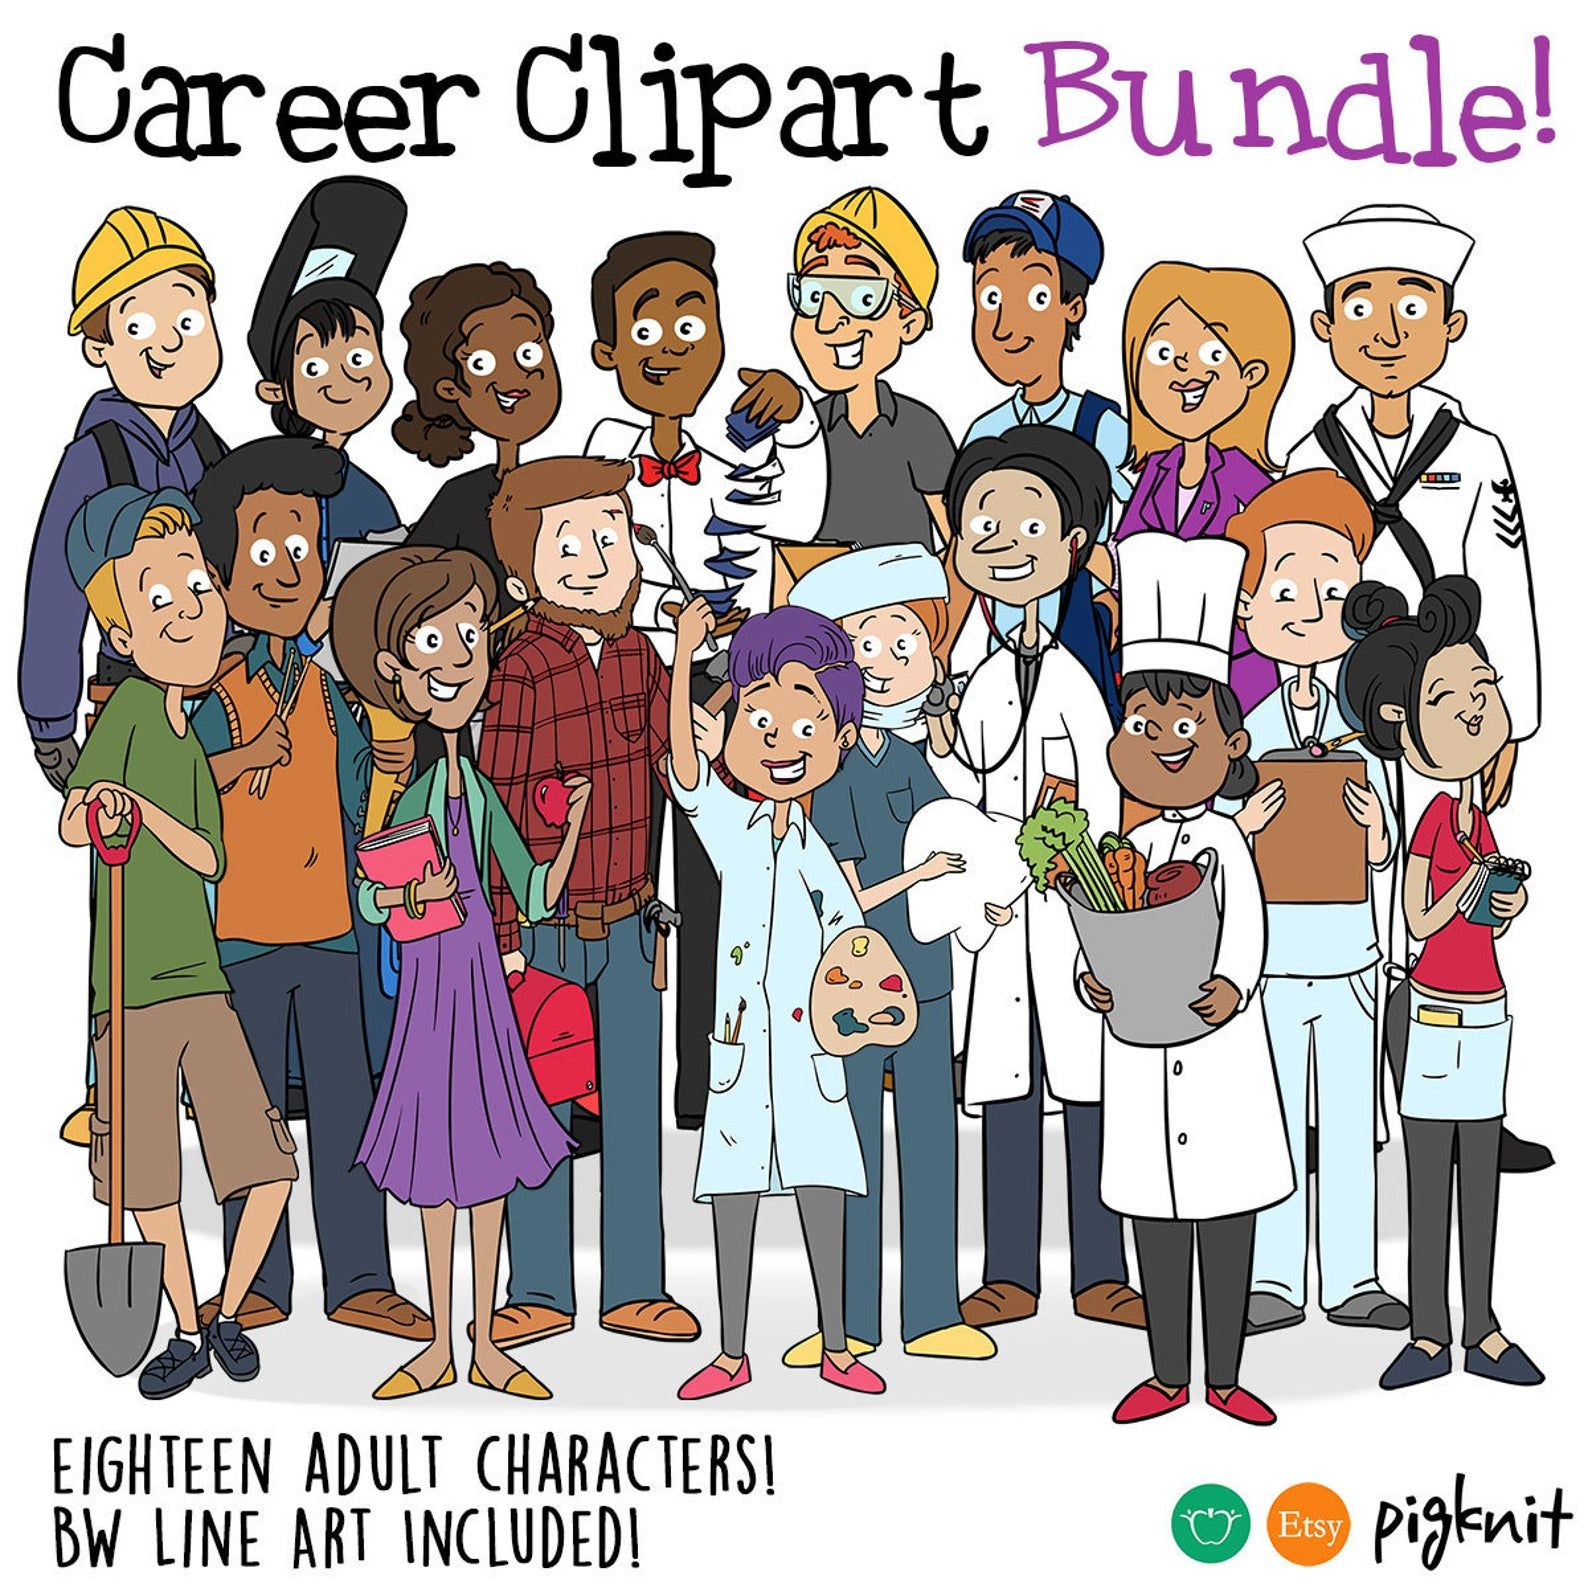 Career Business People Bundle Printable Digital Clipart Png Set For Instant Download Scrapbooking Art Or Teacher Use Clip Art Digital Clip Art Career